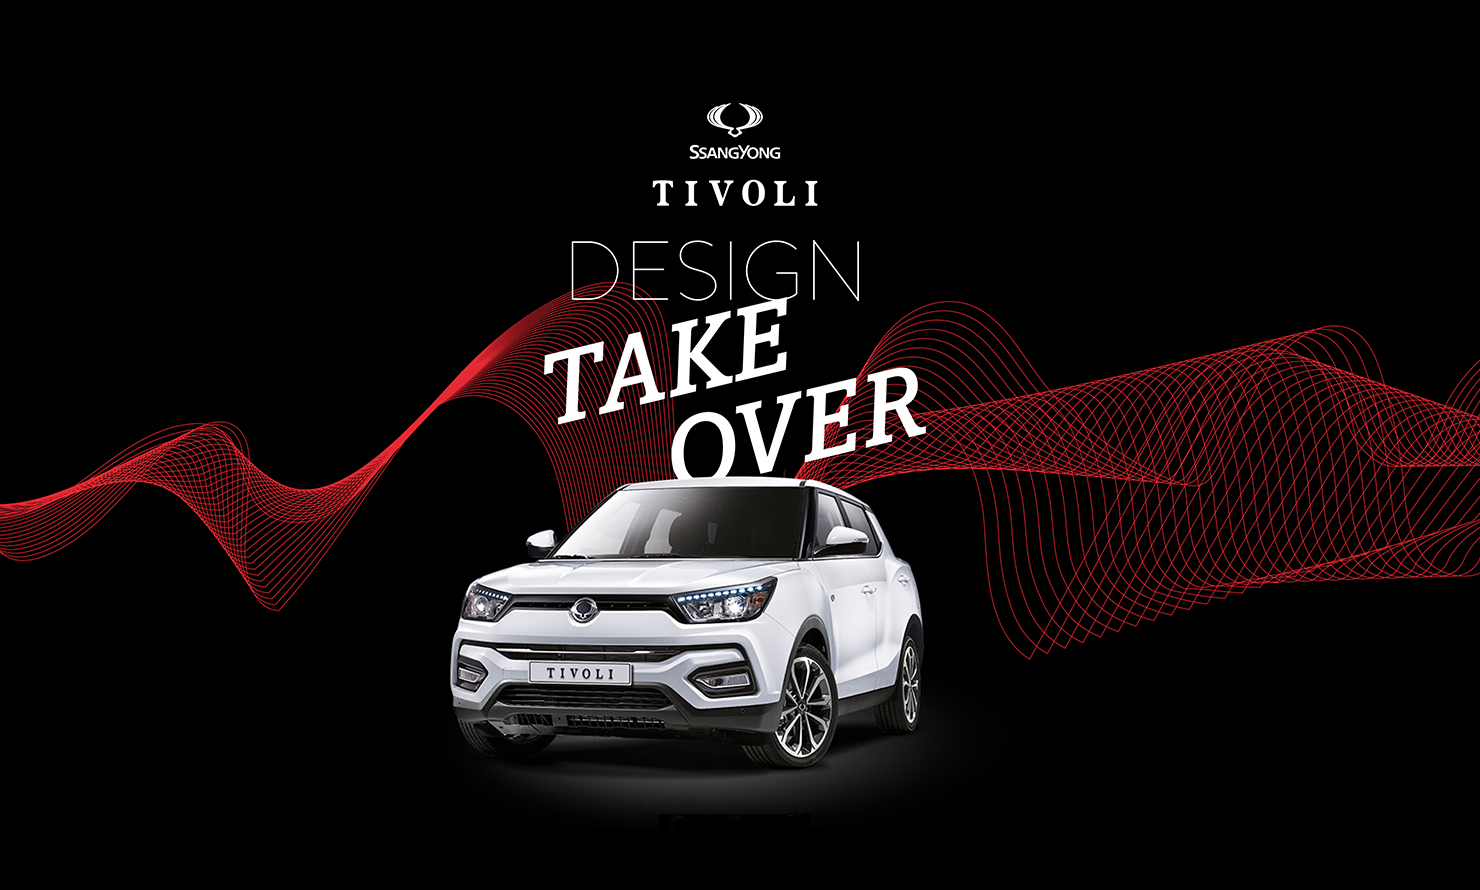 https://kubelibre.com/uploads/Slider-work-tutti-clienti/ssangyong-tivoli-design-take-over-exhibition-mudec-milano-1.jpg